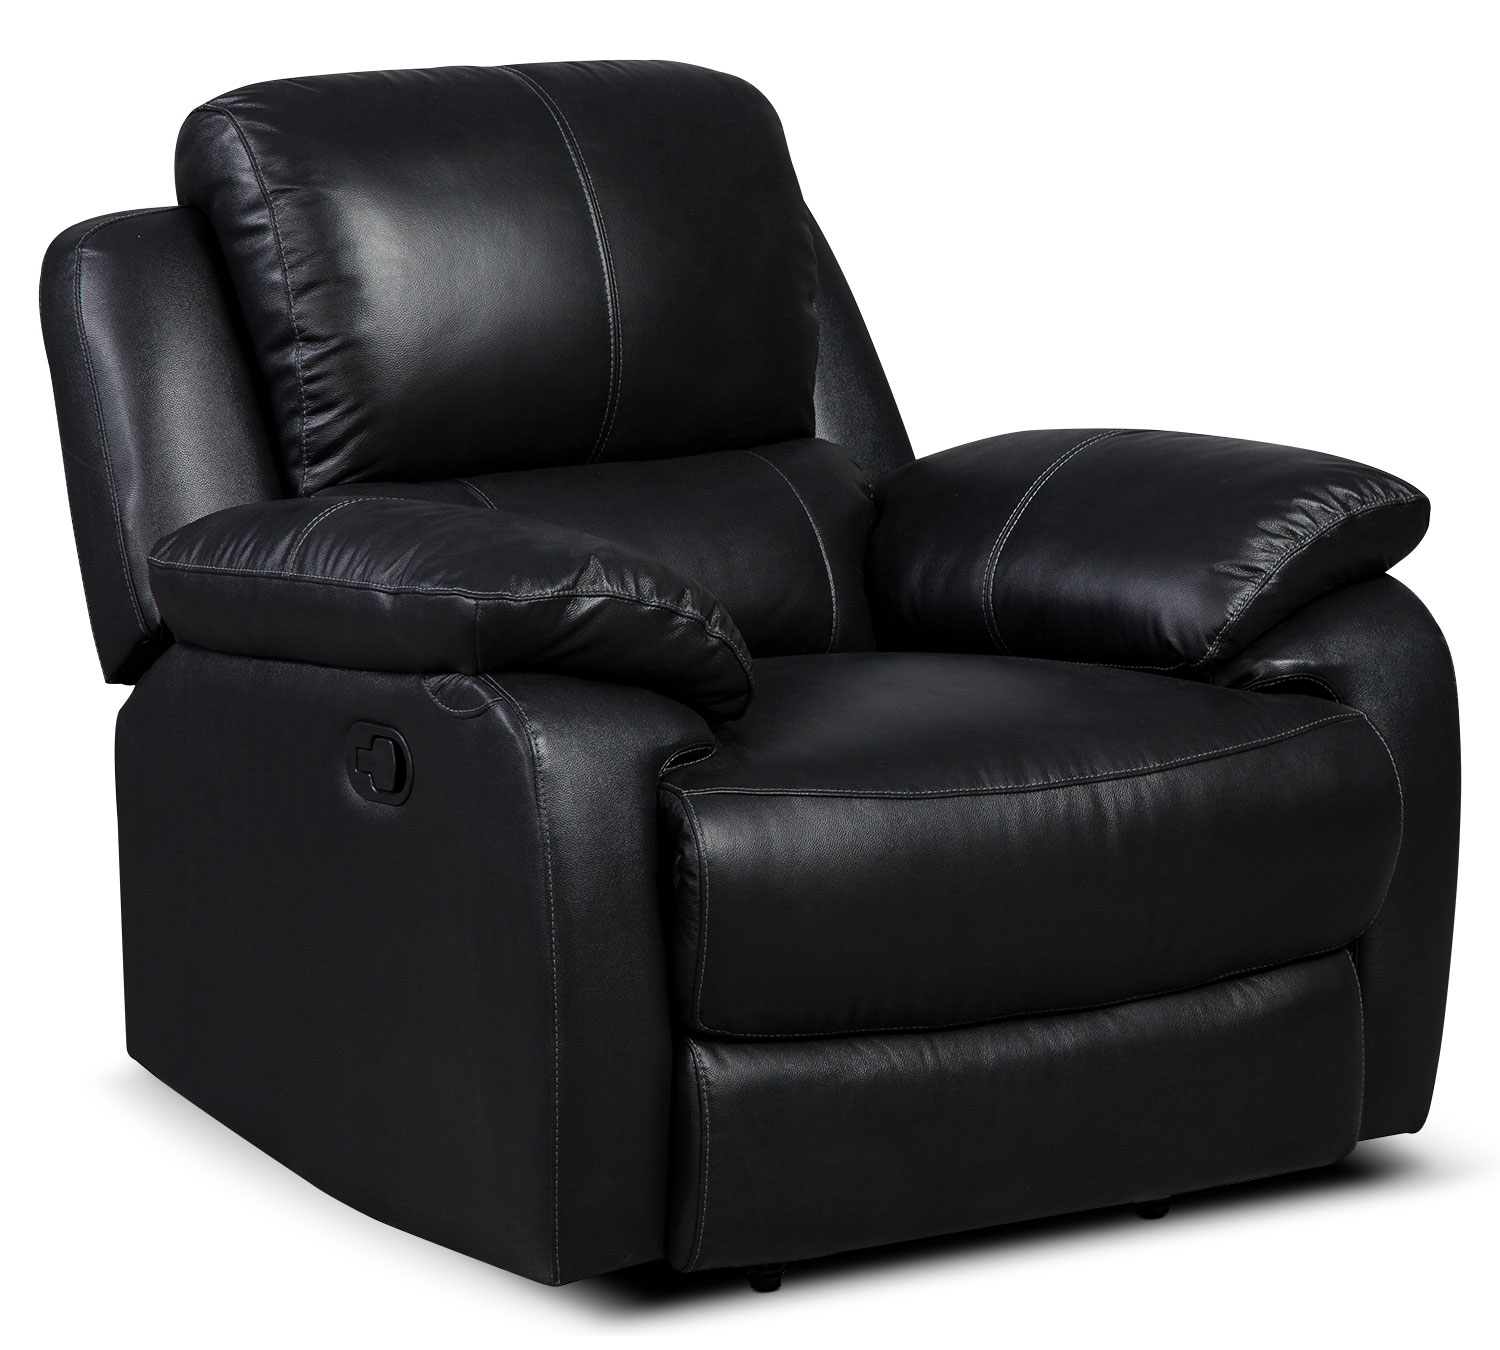 Cairo Genuine Leather Reclining Chair – Black